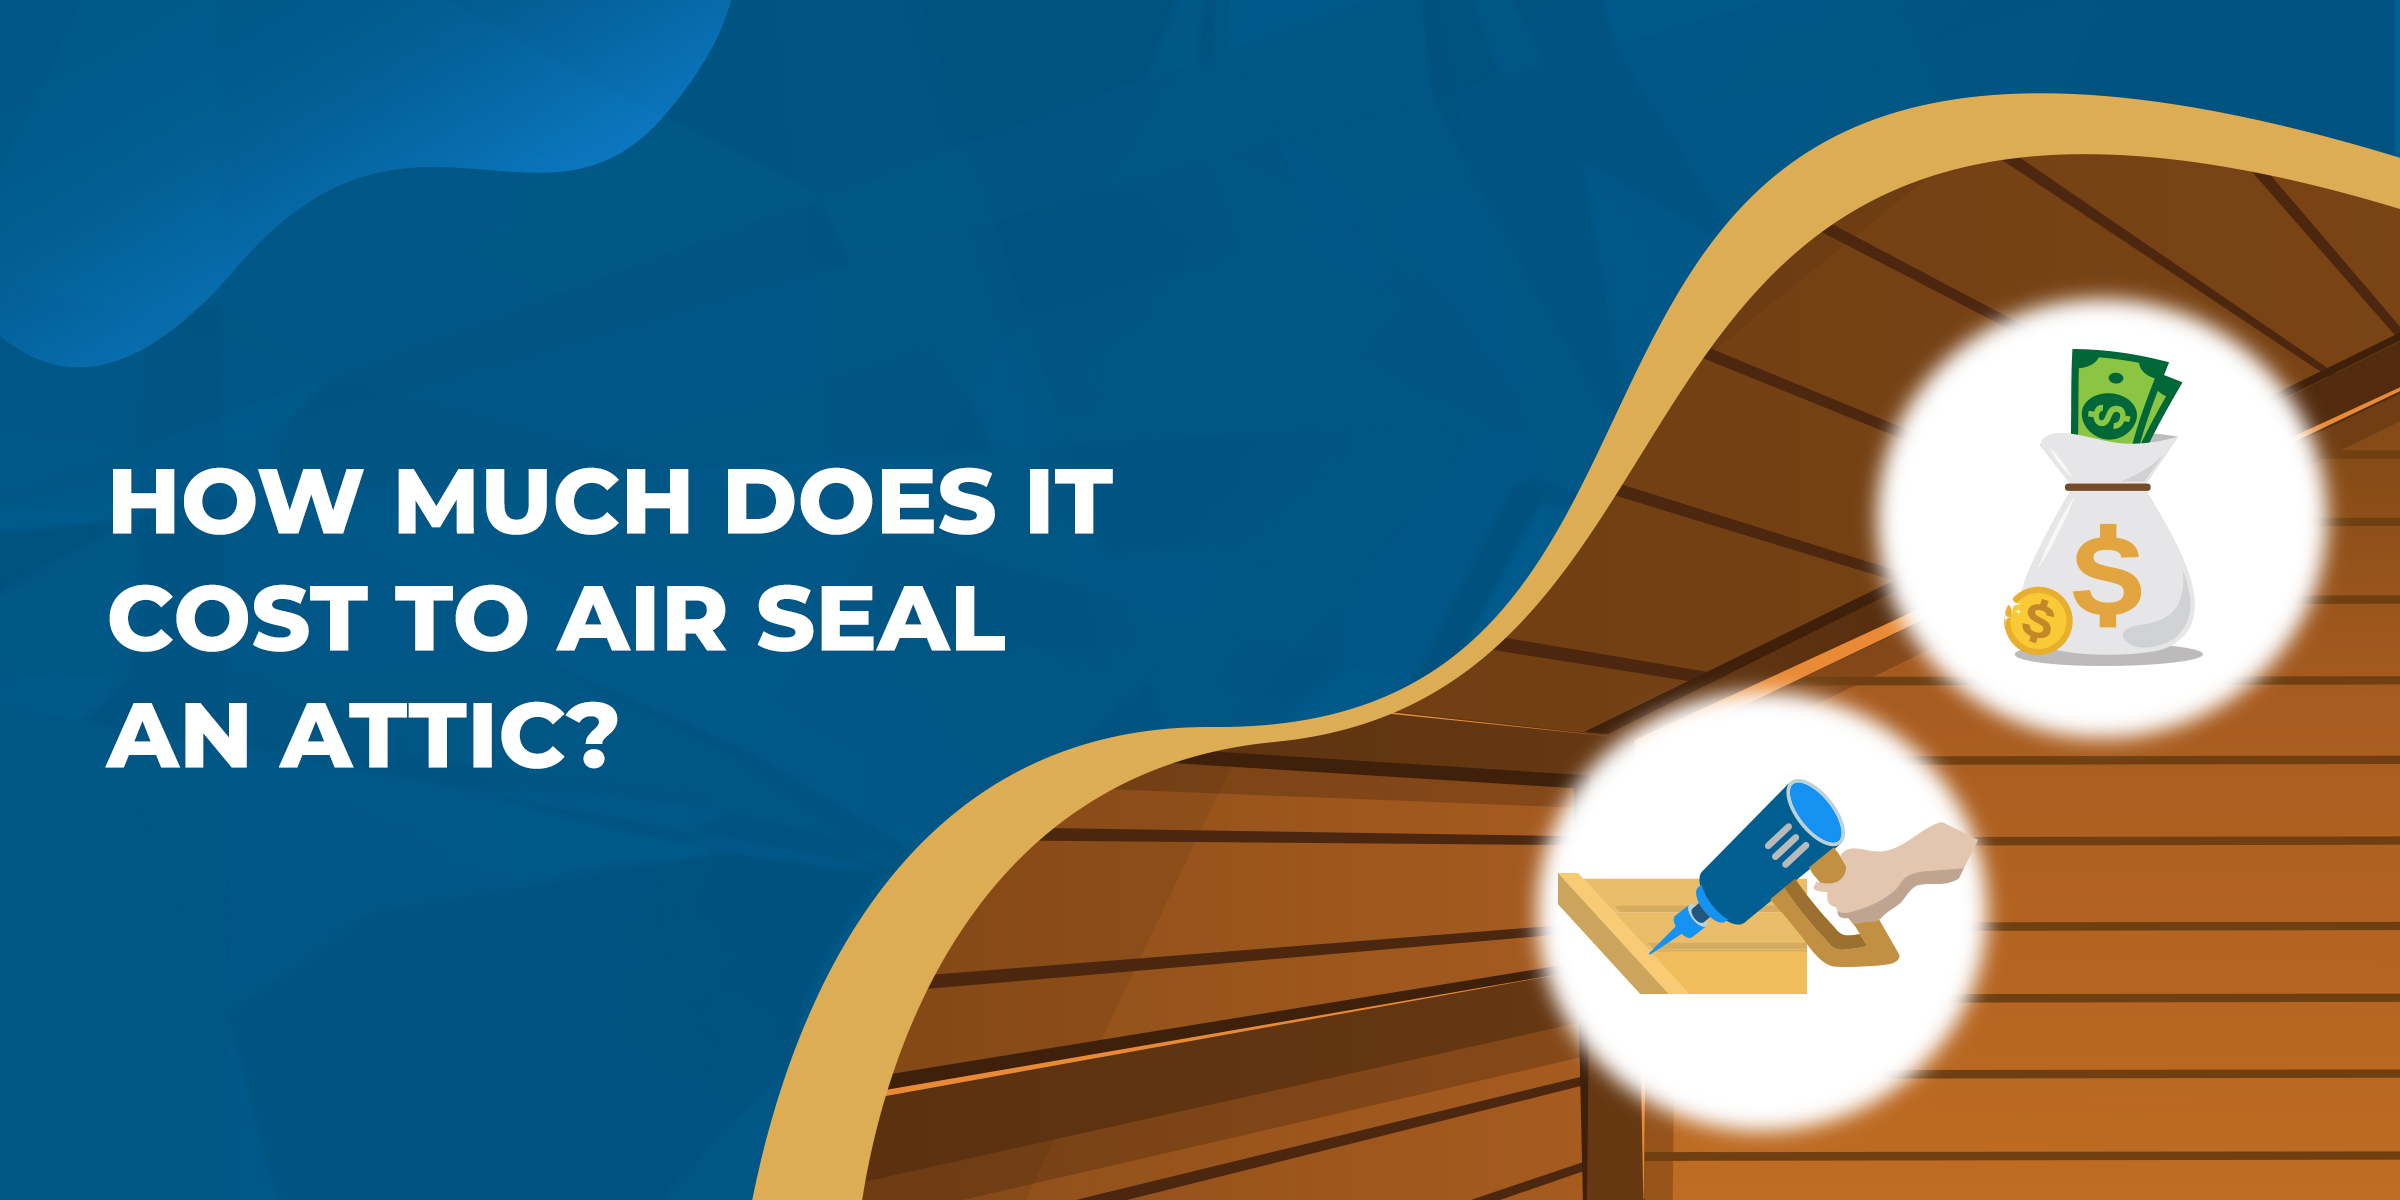 How Much Does It Cost to Air Seal an Attic